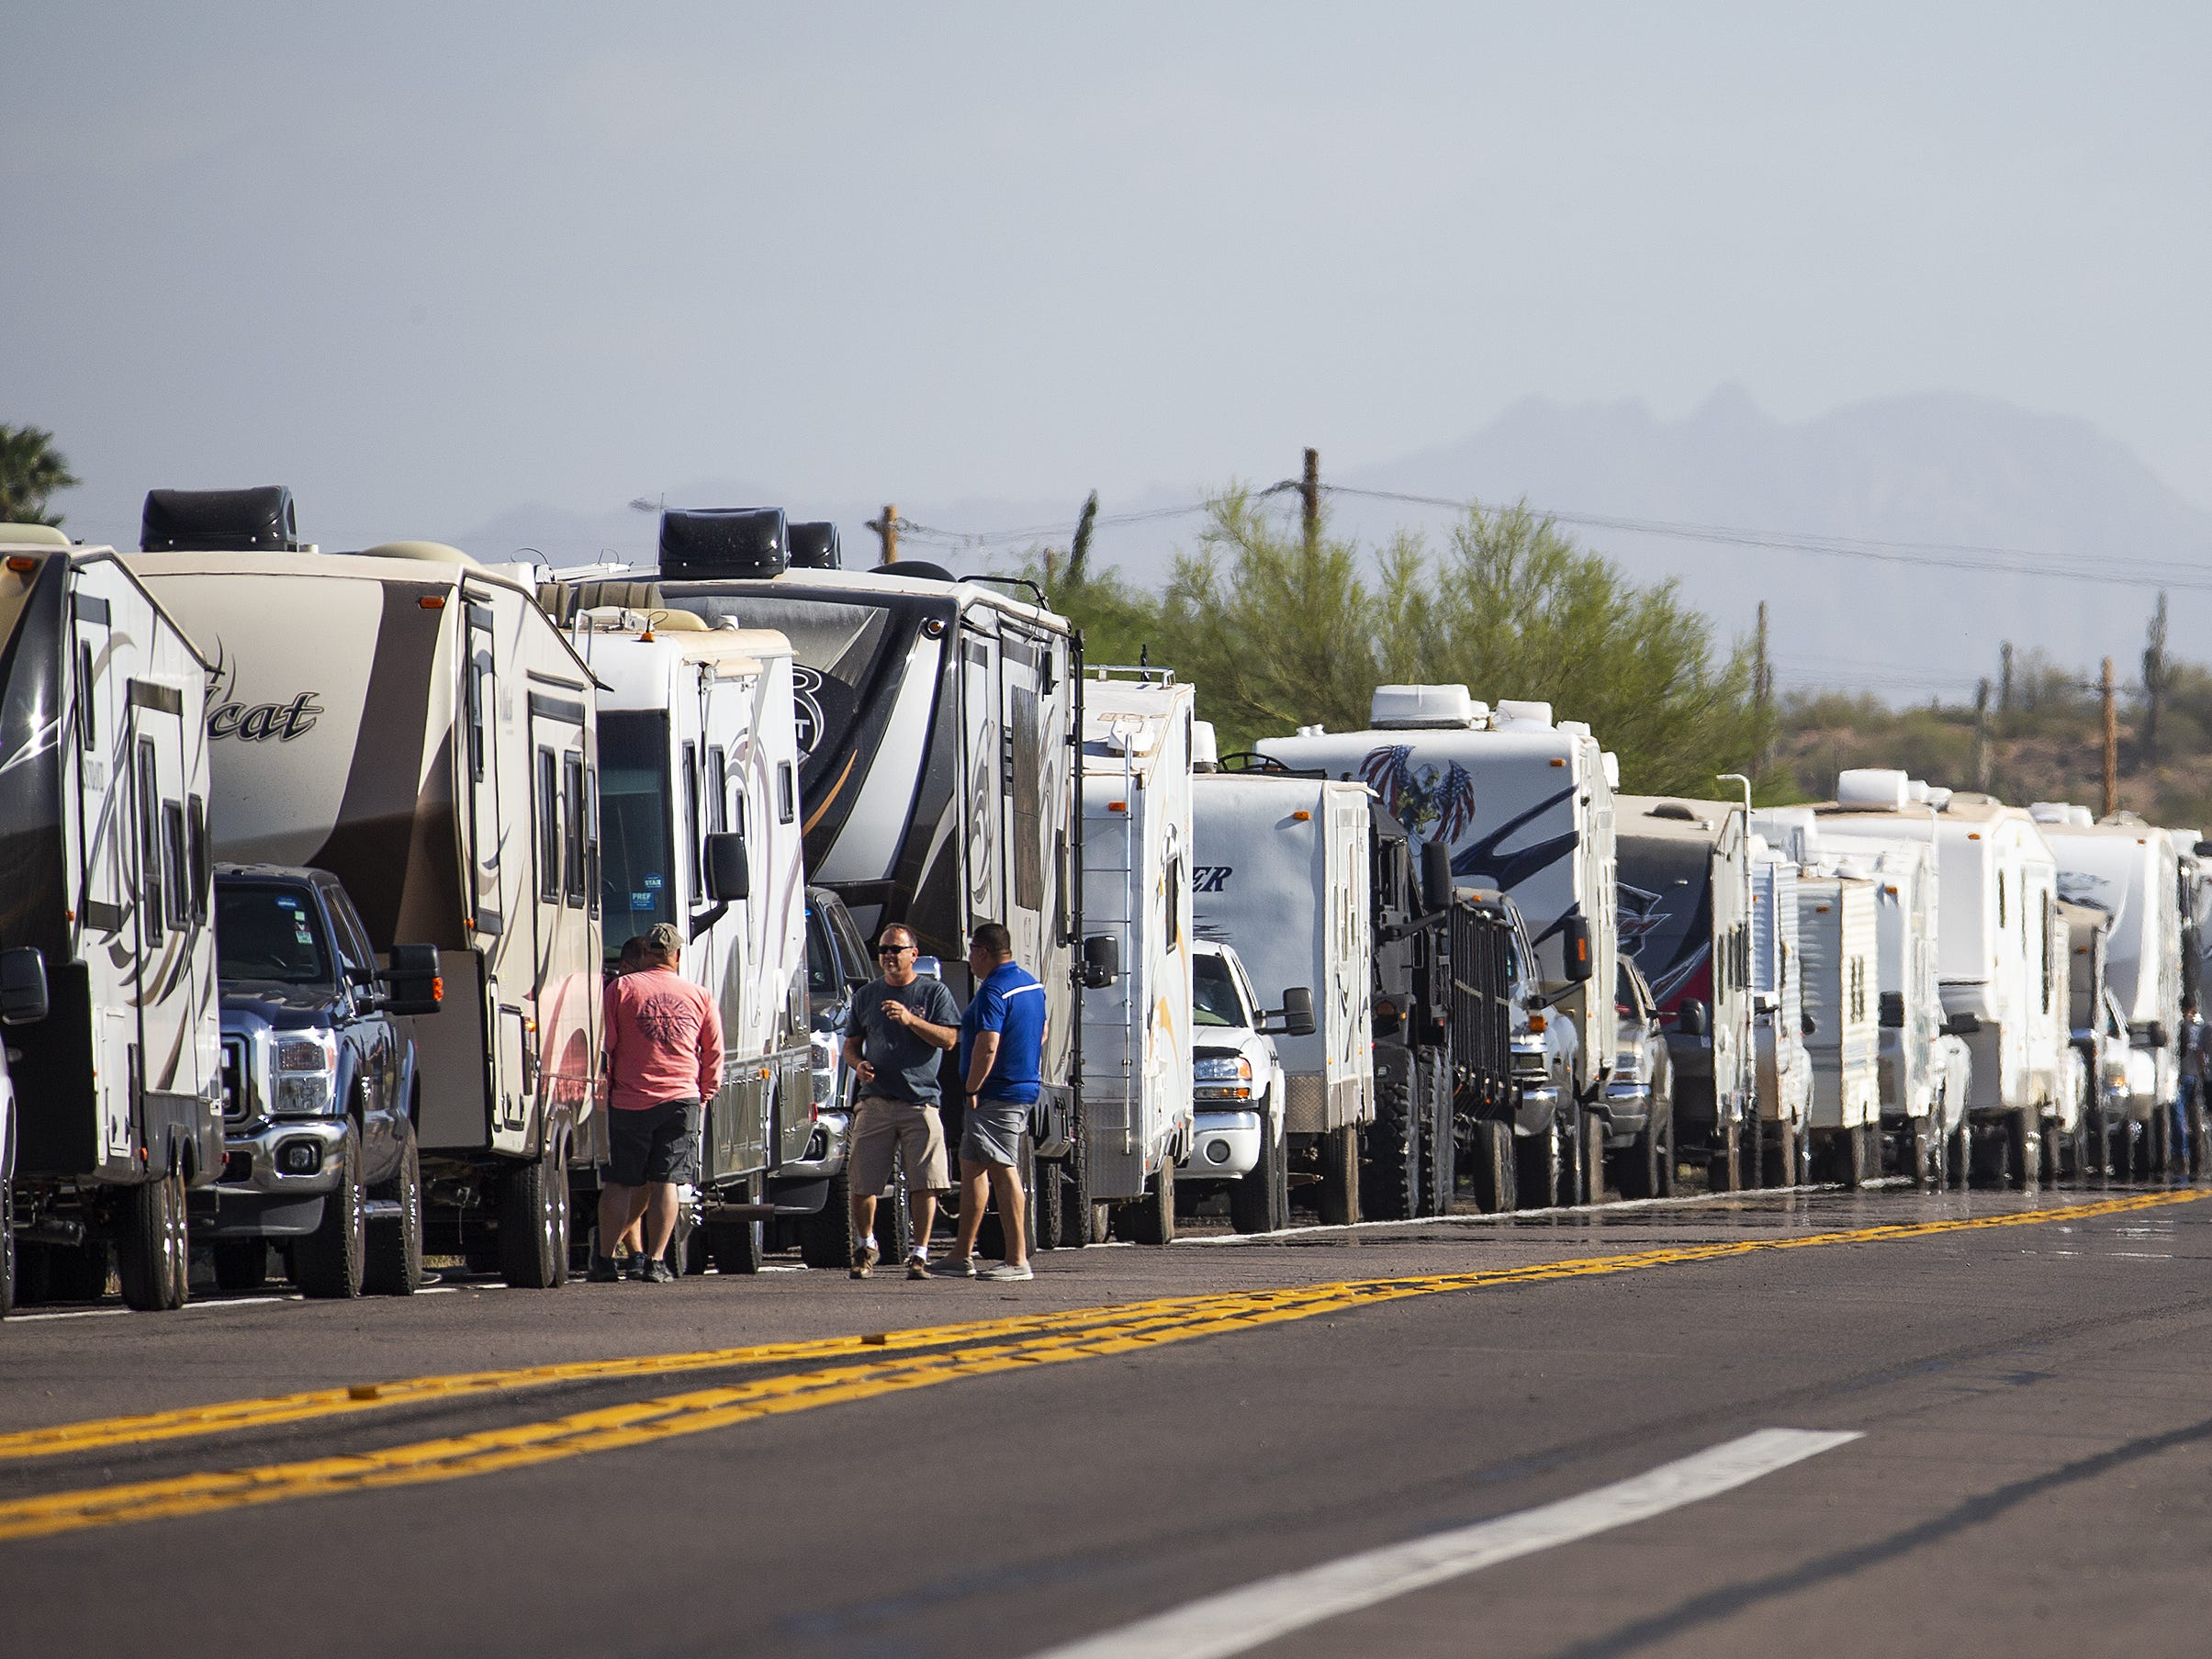 Hundreds of vehicles, including campers and trailers, wait in line to enter the Country Thunder Arizona country music festival on April 10, 2019.